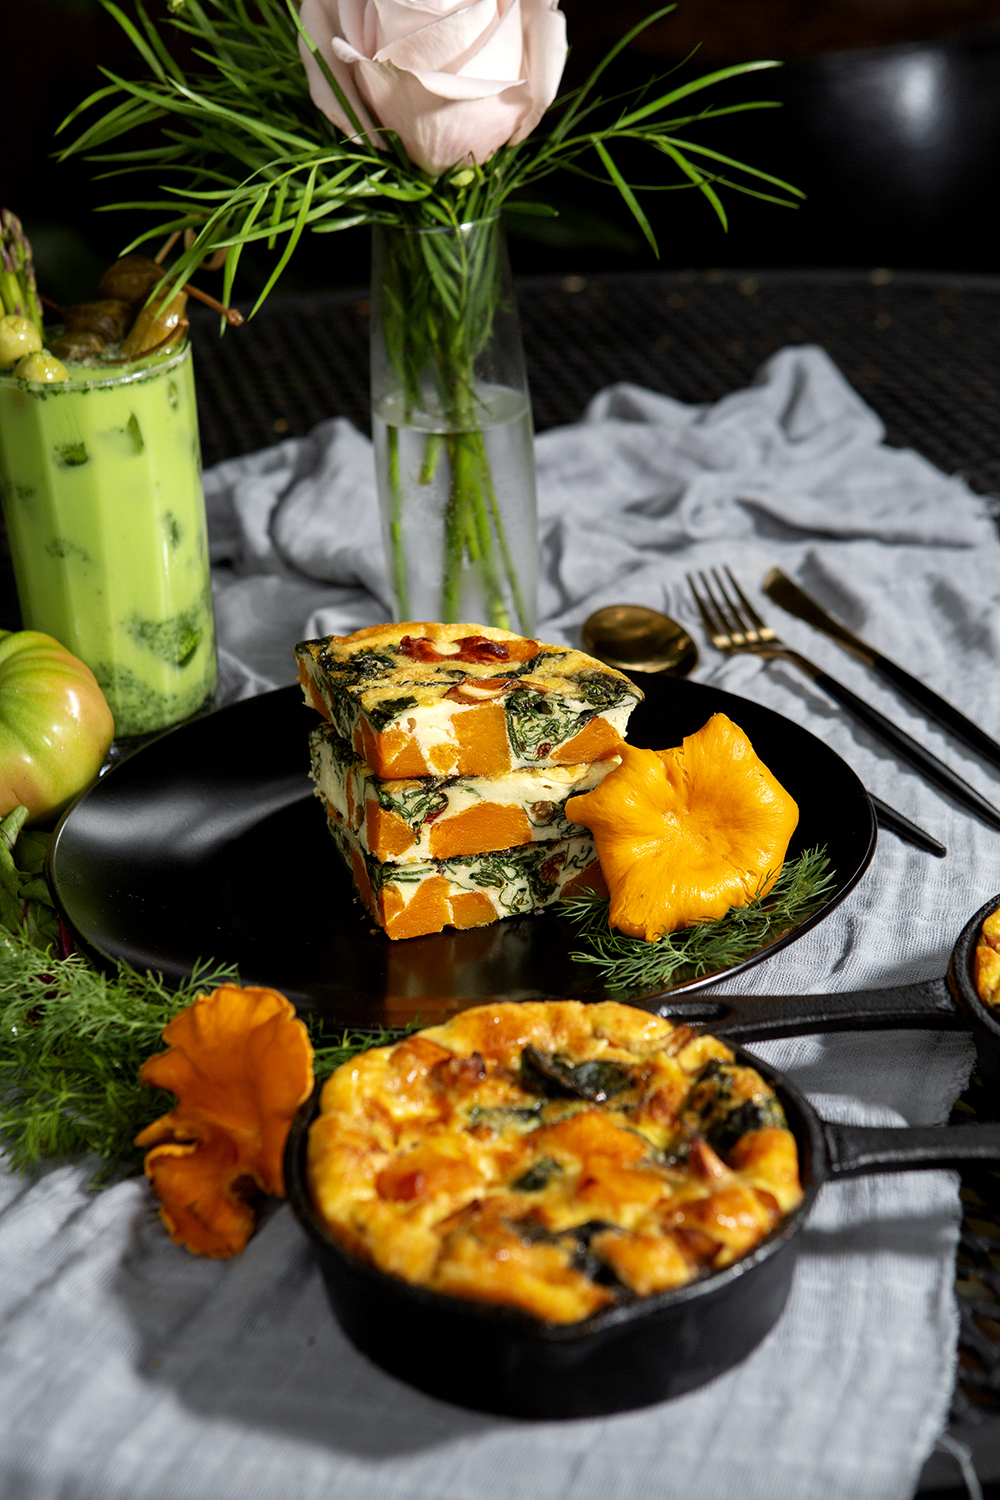 Served in miniature cast iron pans, enjoy a frittata made with sweet potato, spinach and roasted tomatoes. Enjoy with a Green Tomato Bloody Mary.